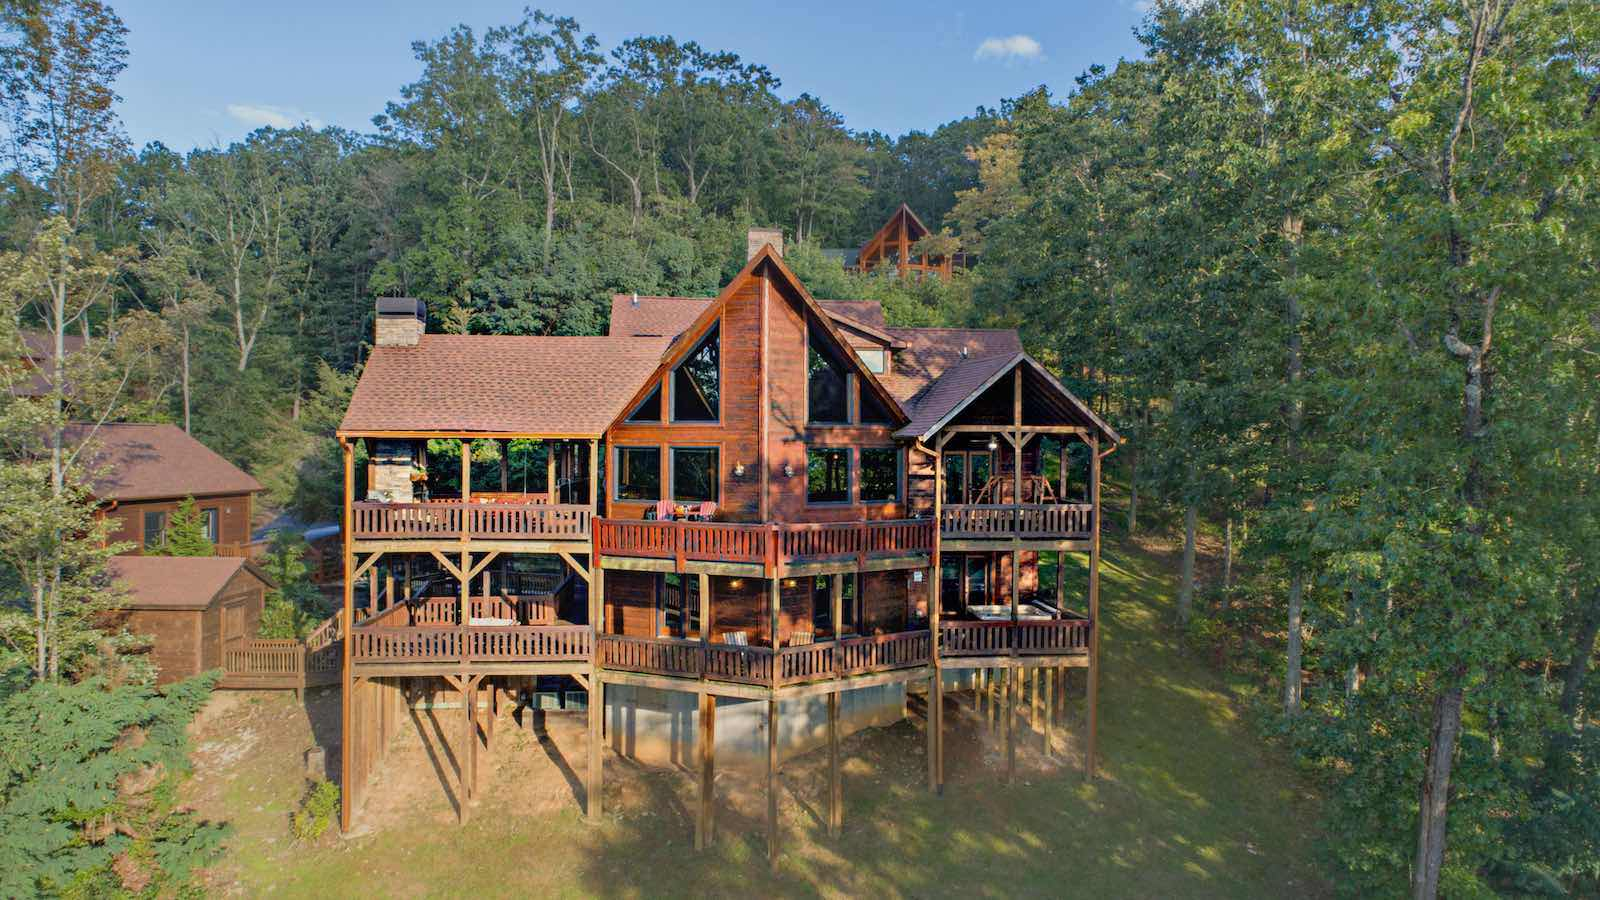 Blue ridge ga cabin rentals for Large cabin rentals north georgia